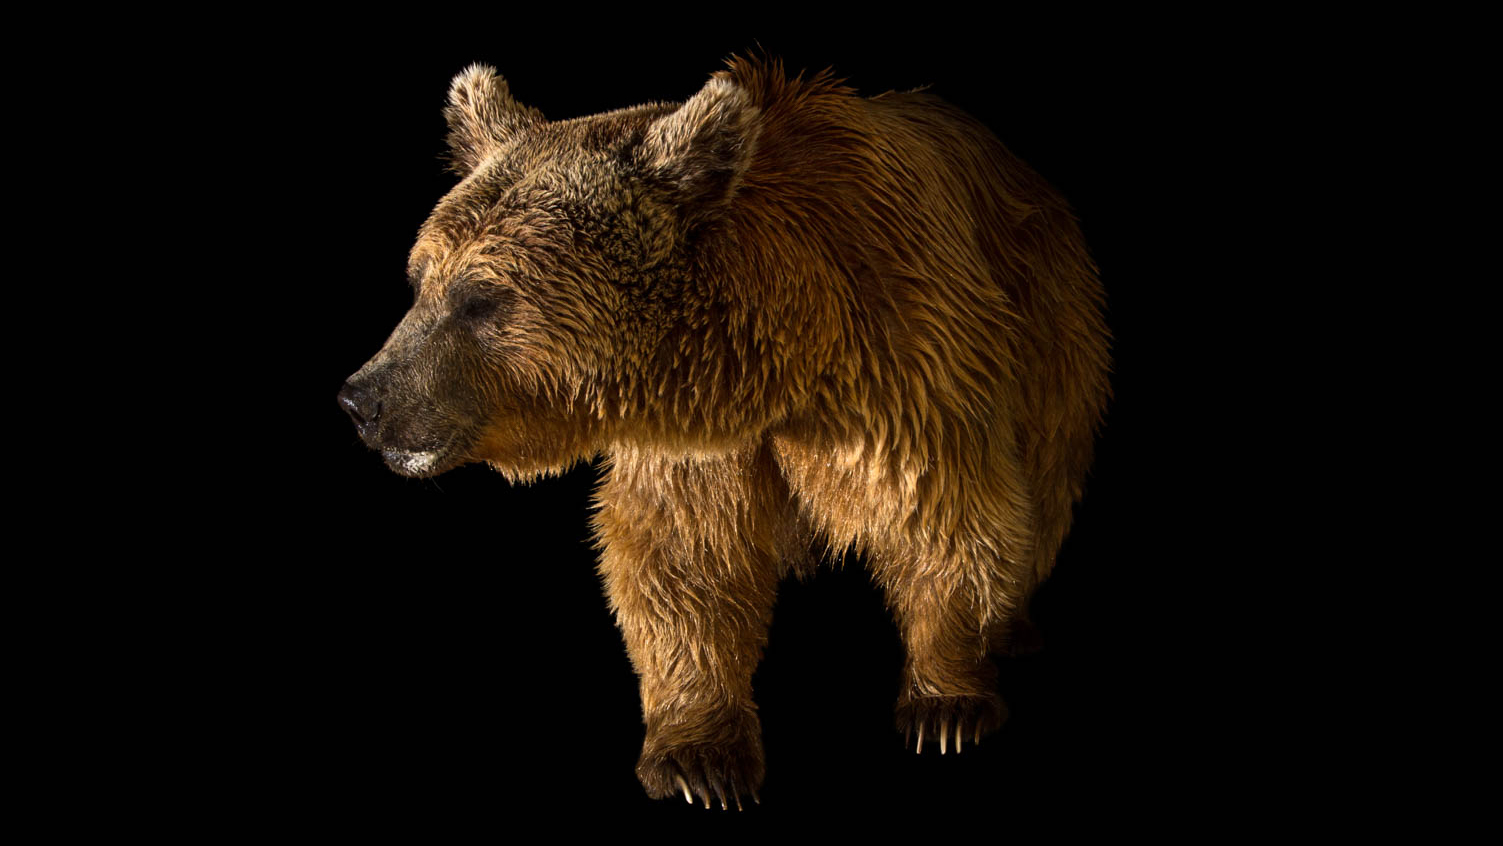 Creature Clip: Syrian Brown Bear - 1:28 - The last Syrian brown bear was spotted in its namesake country more than 50 years ago.